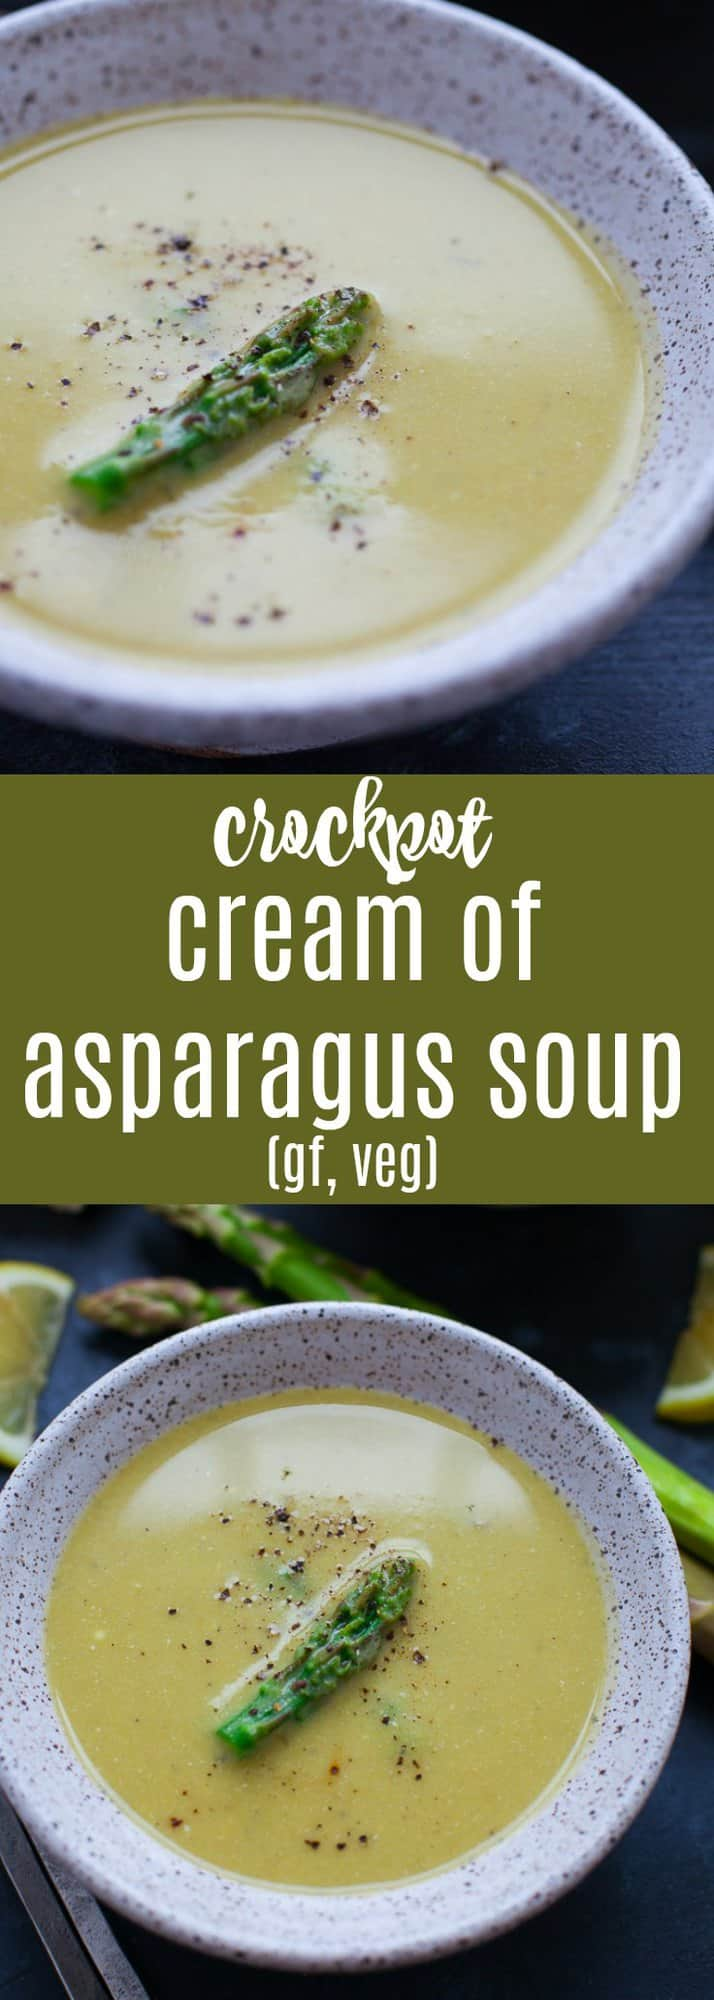 With only six ingredients needed, this crockpot cream of asparagus soup might be the easiest soup you'll ever make. #glutenfree #vegetarian